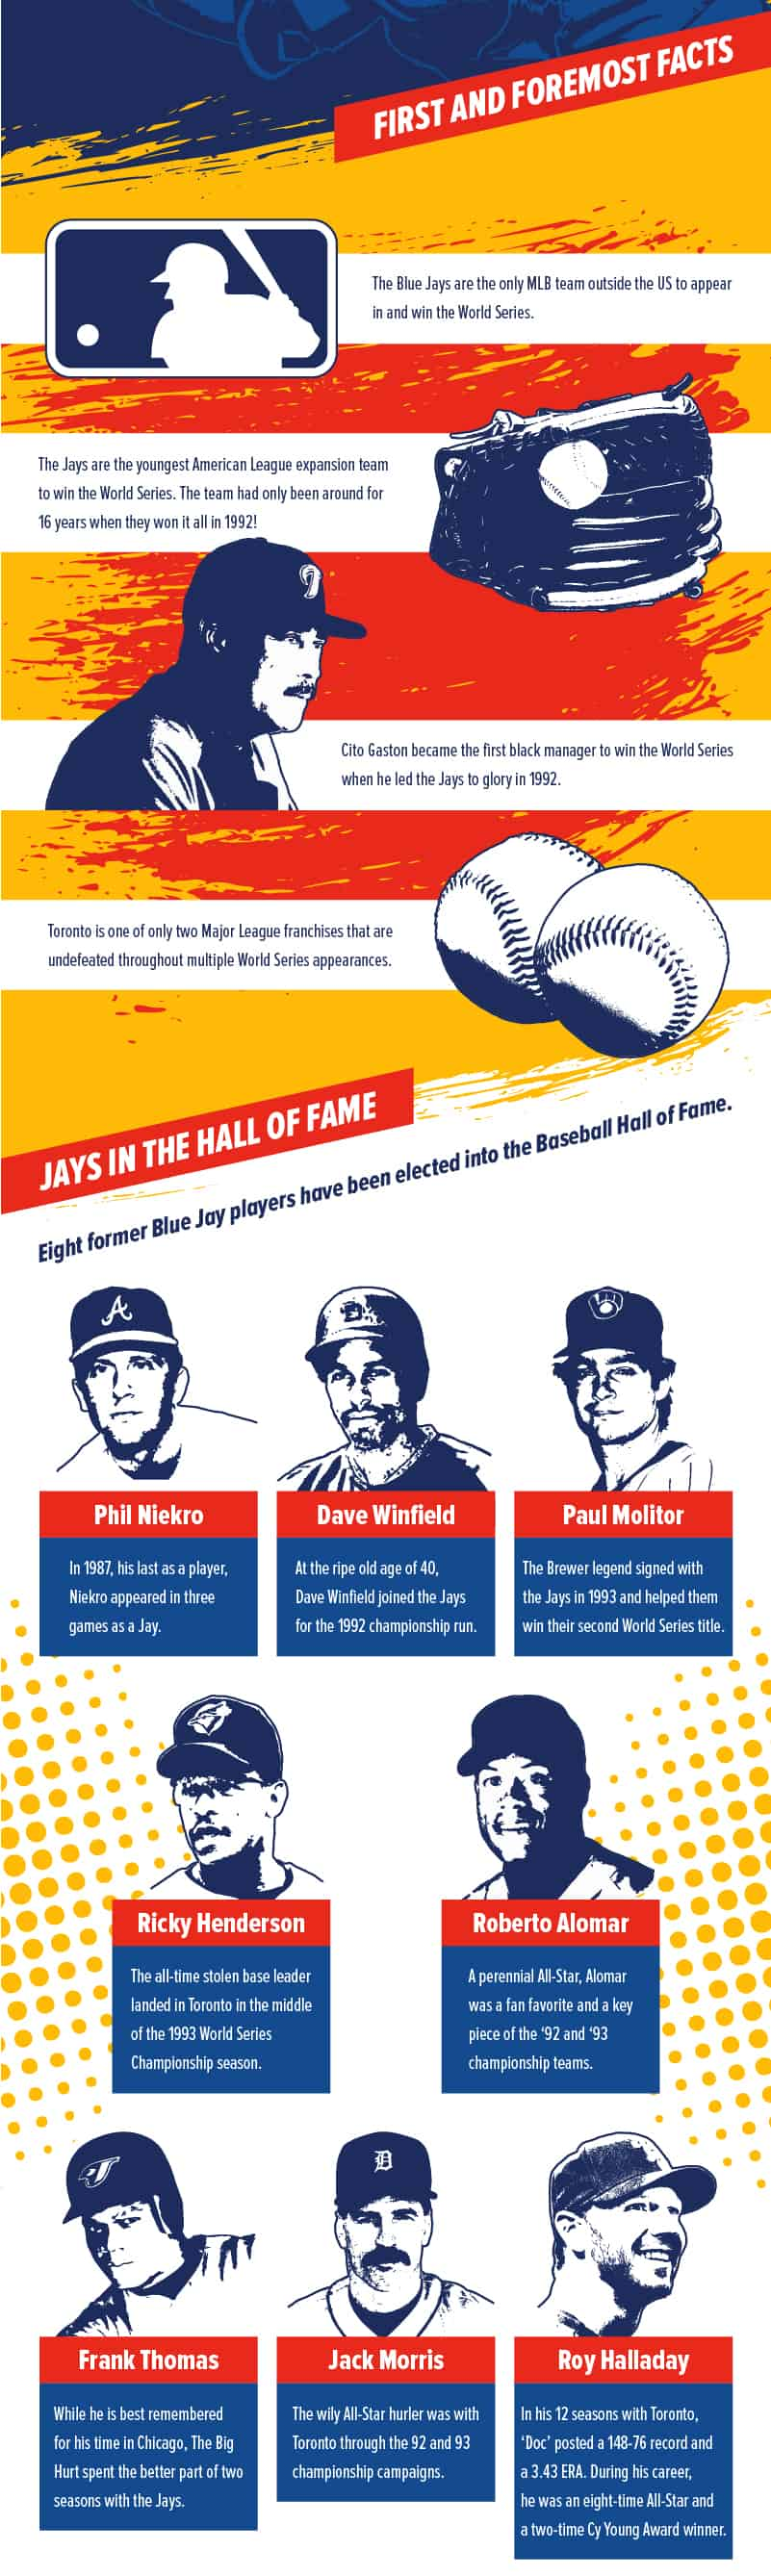 Toronto Blue Jays Facts